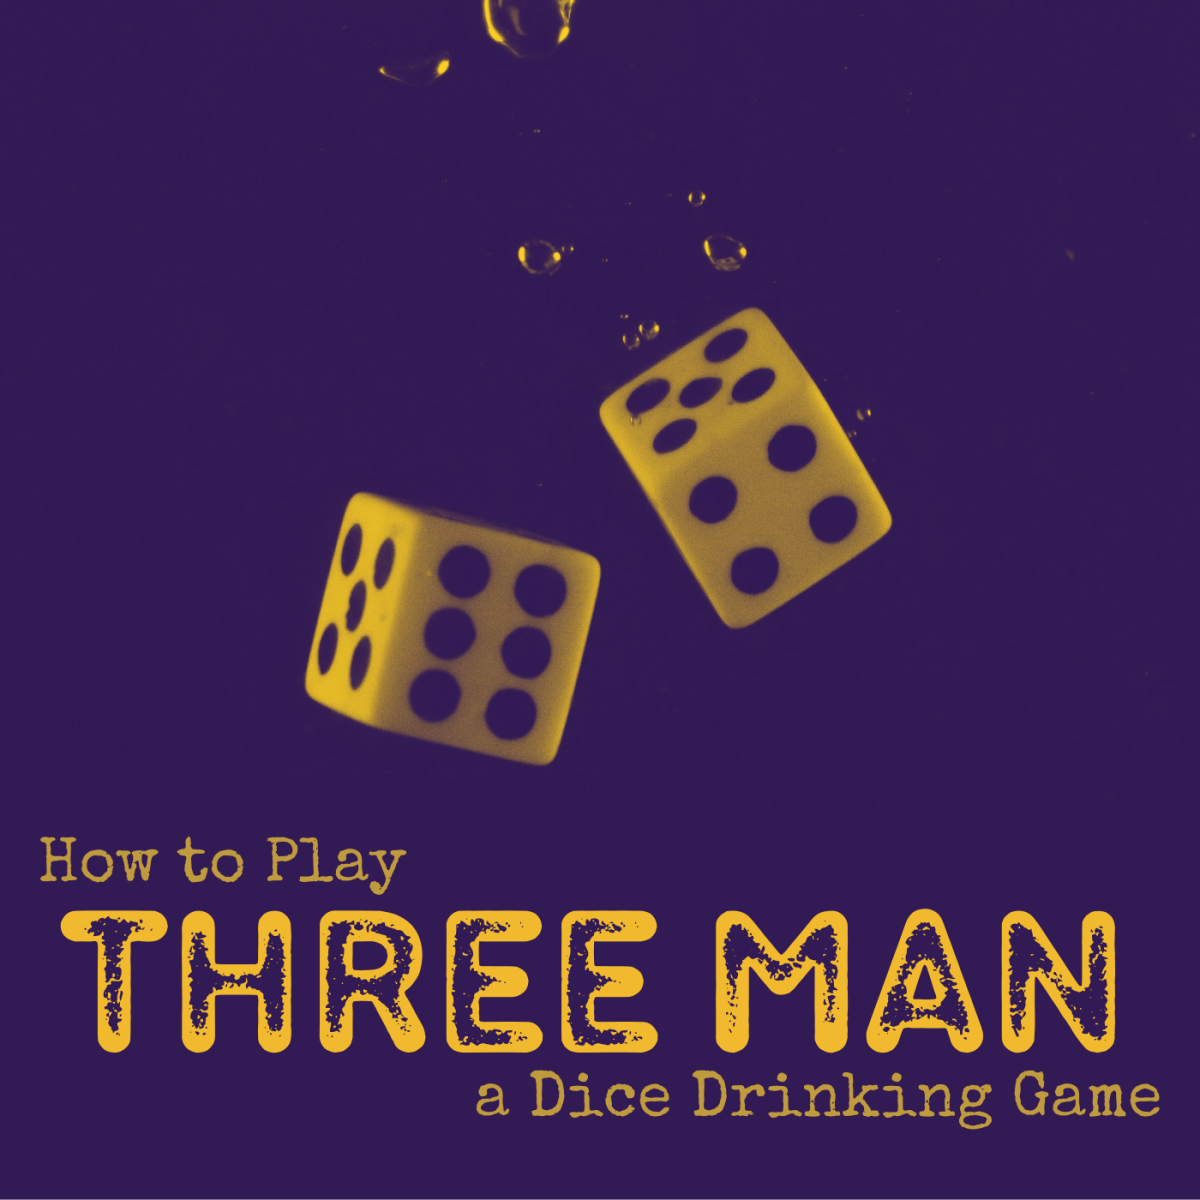 Learn how to play this fun and hilarious drinking game. Oi!